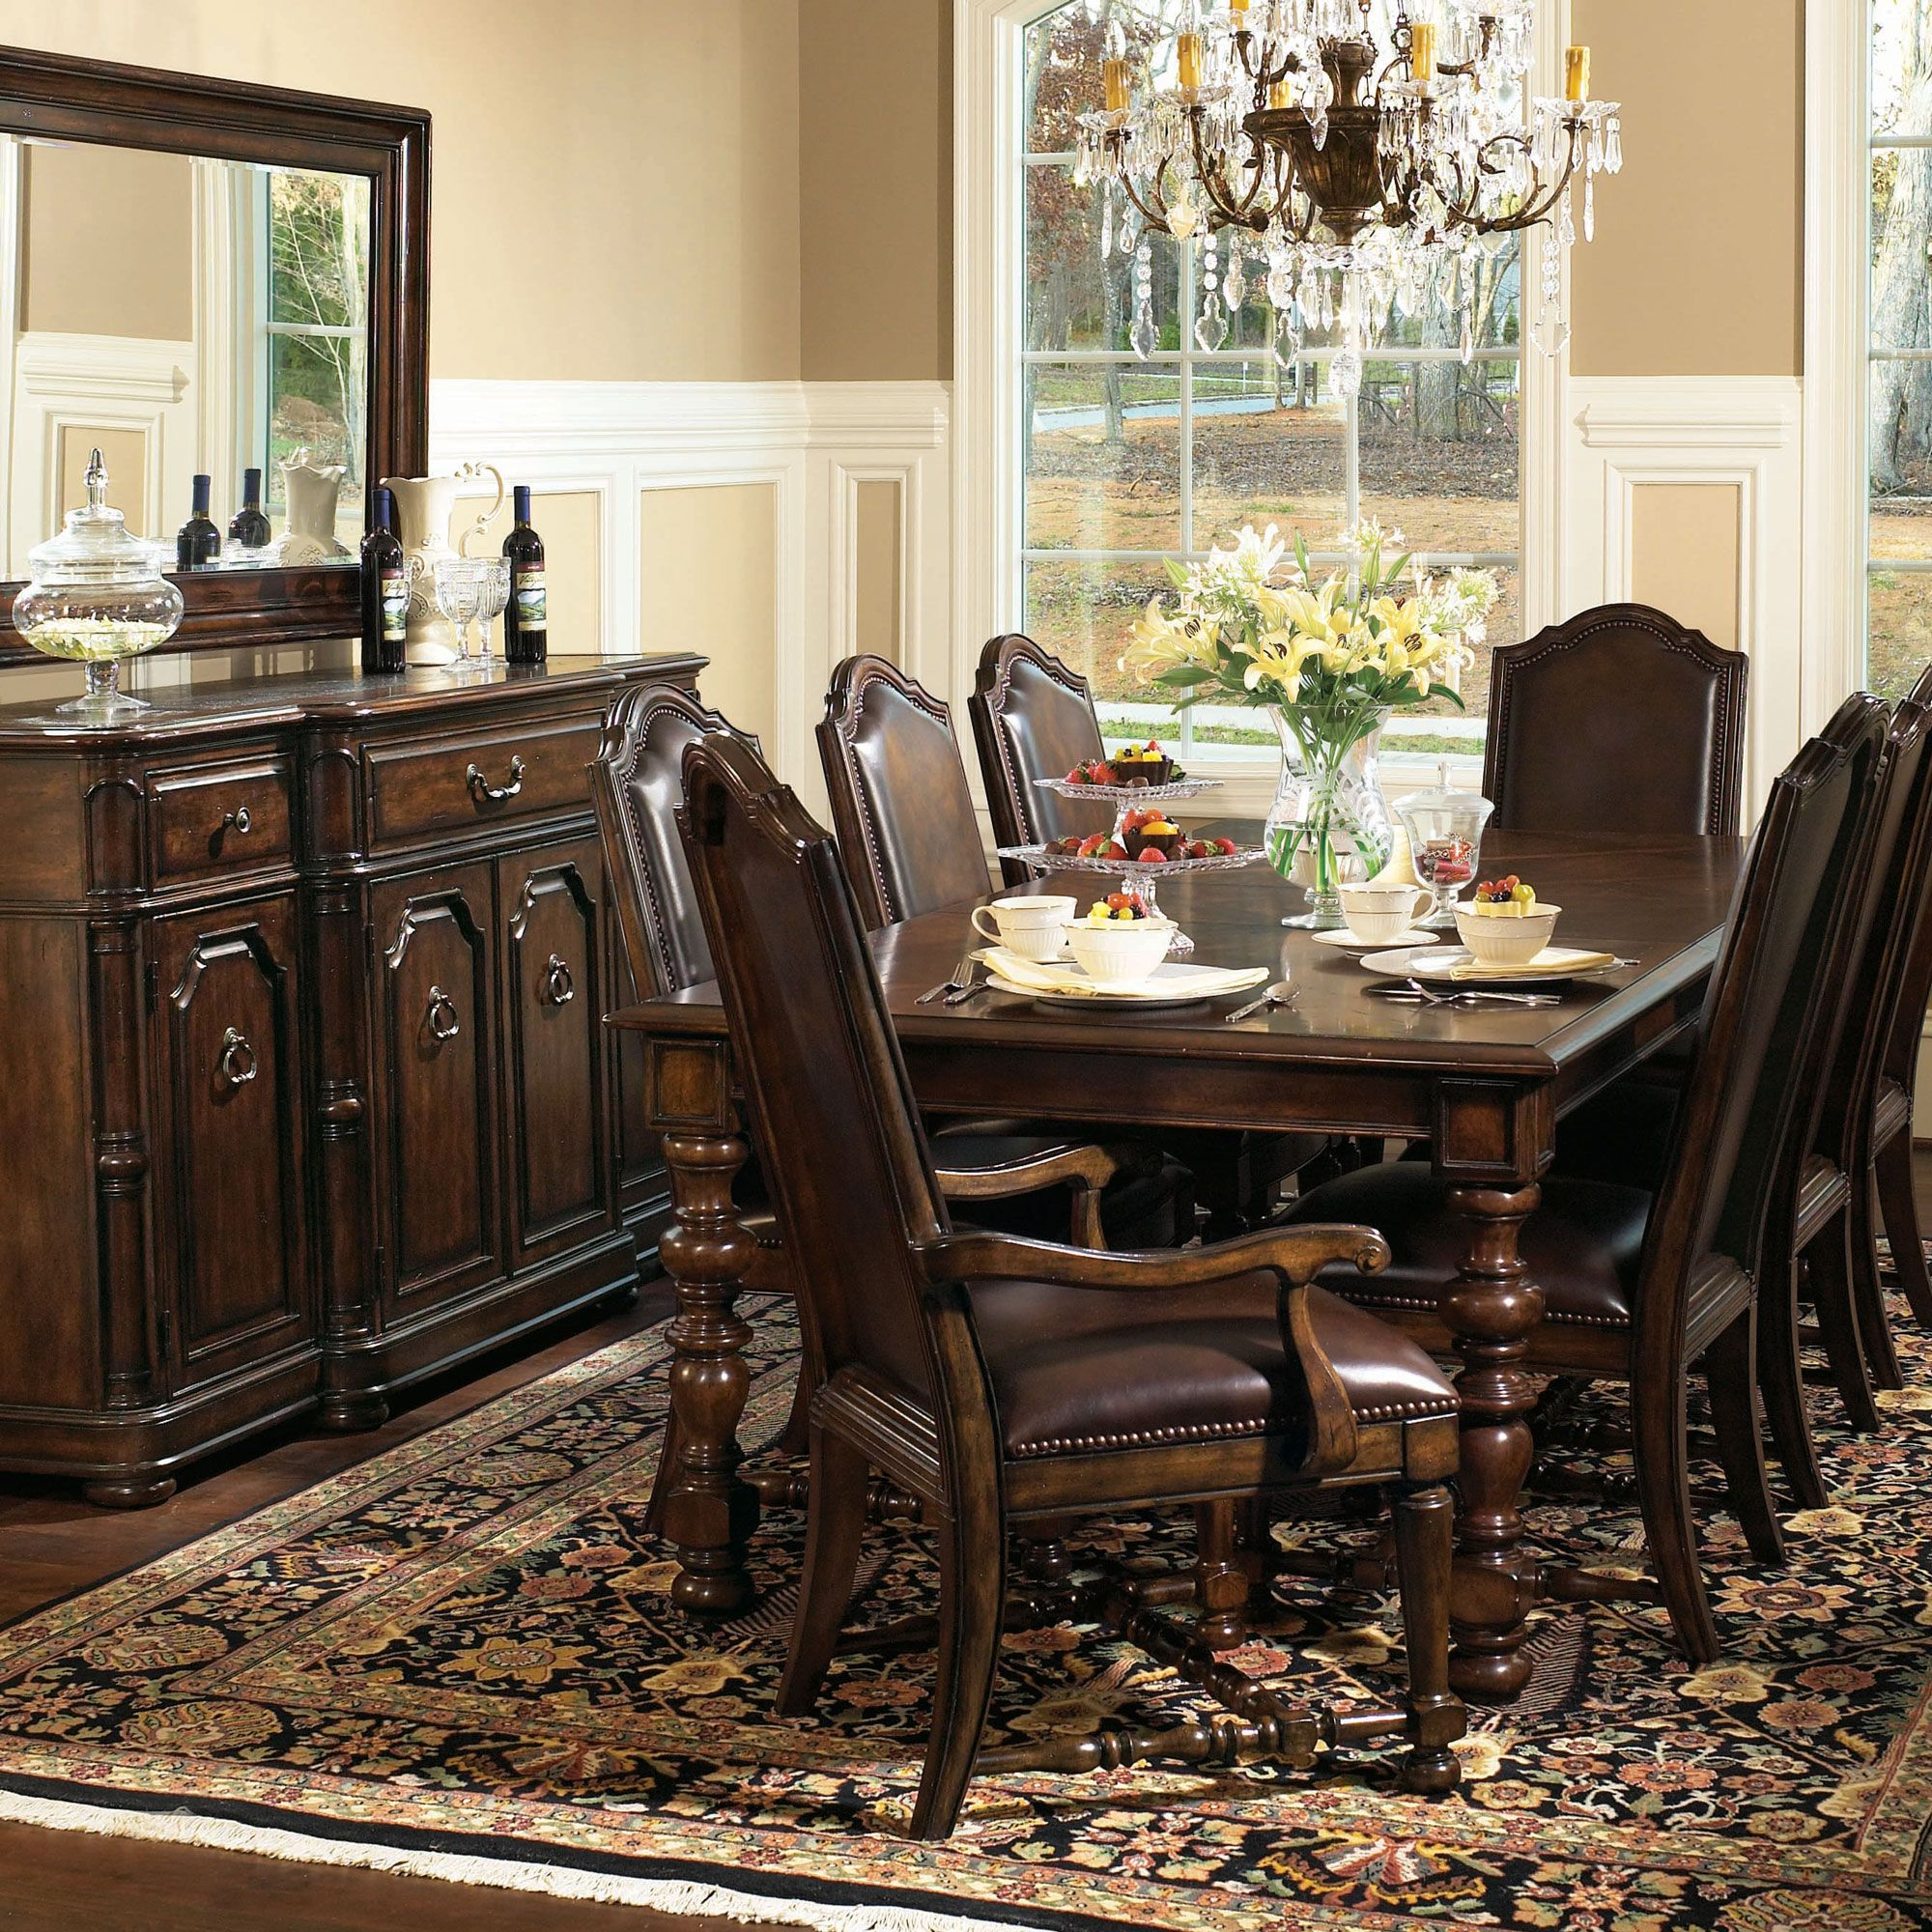 Bernhardt Normandie Manor Dining Room Setting Formal Dining Room Sets Bernhardt Dining Table High Back Dining Chairs